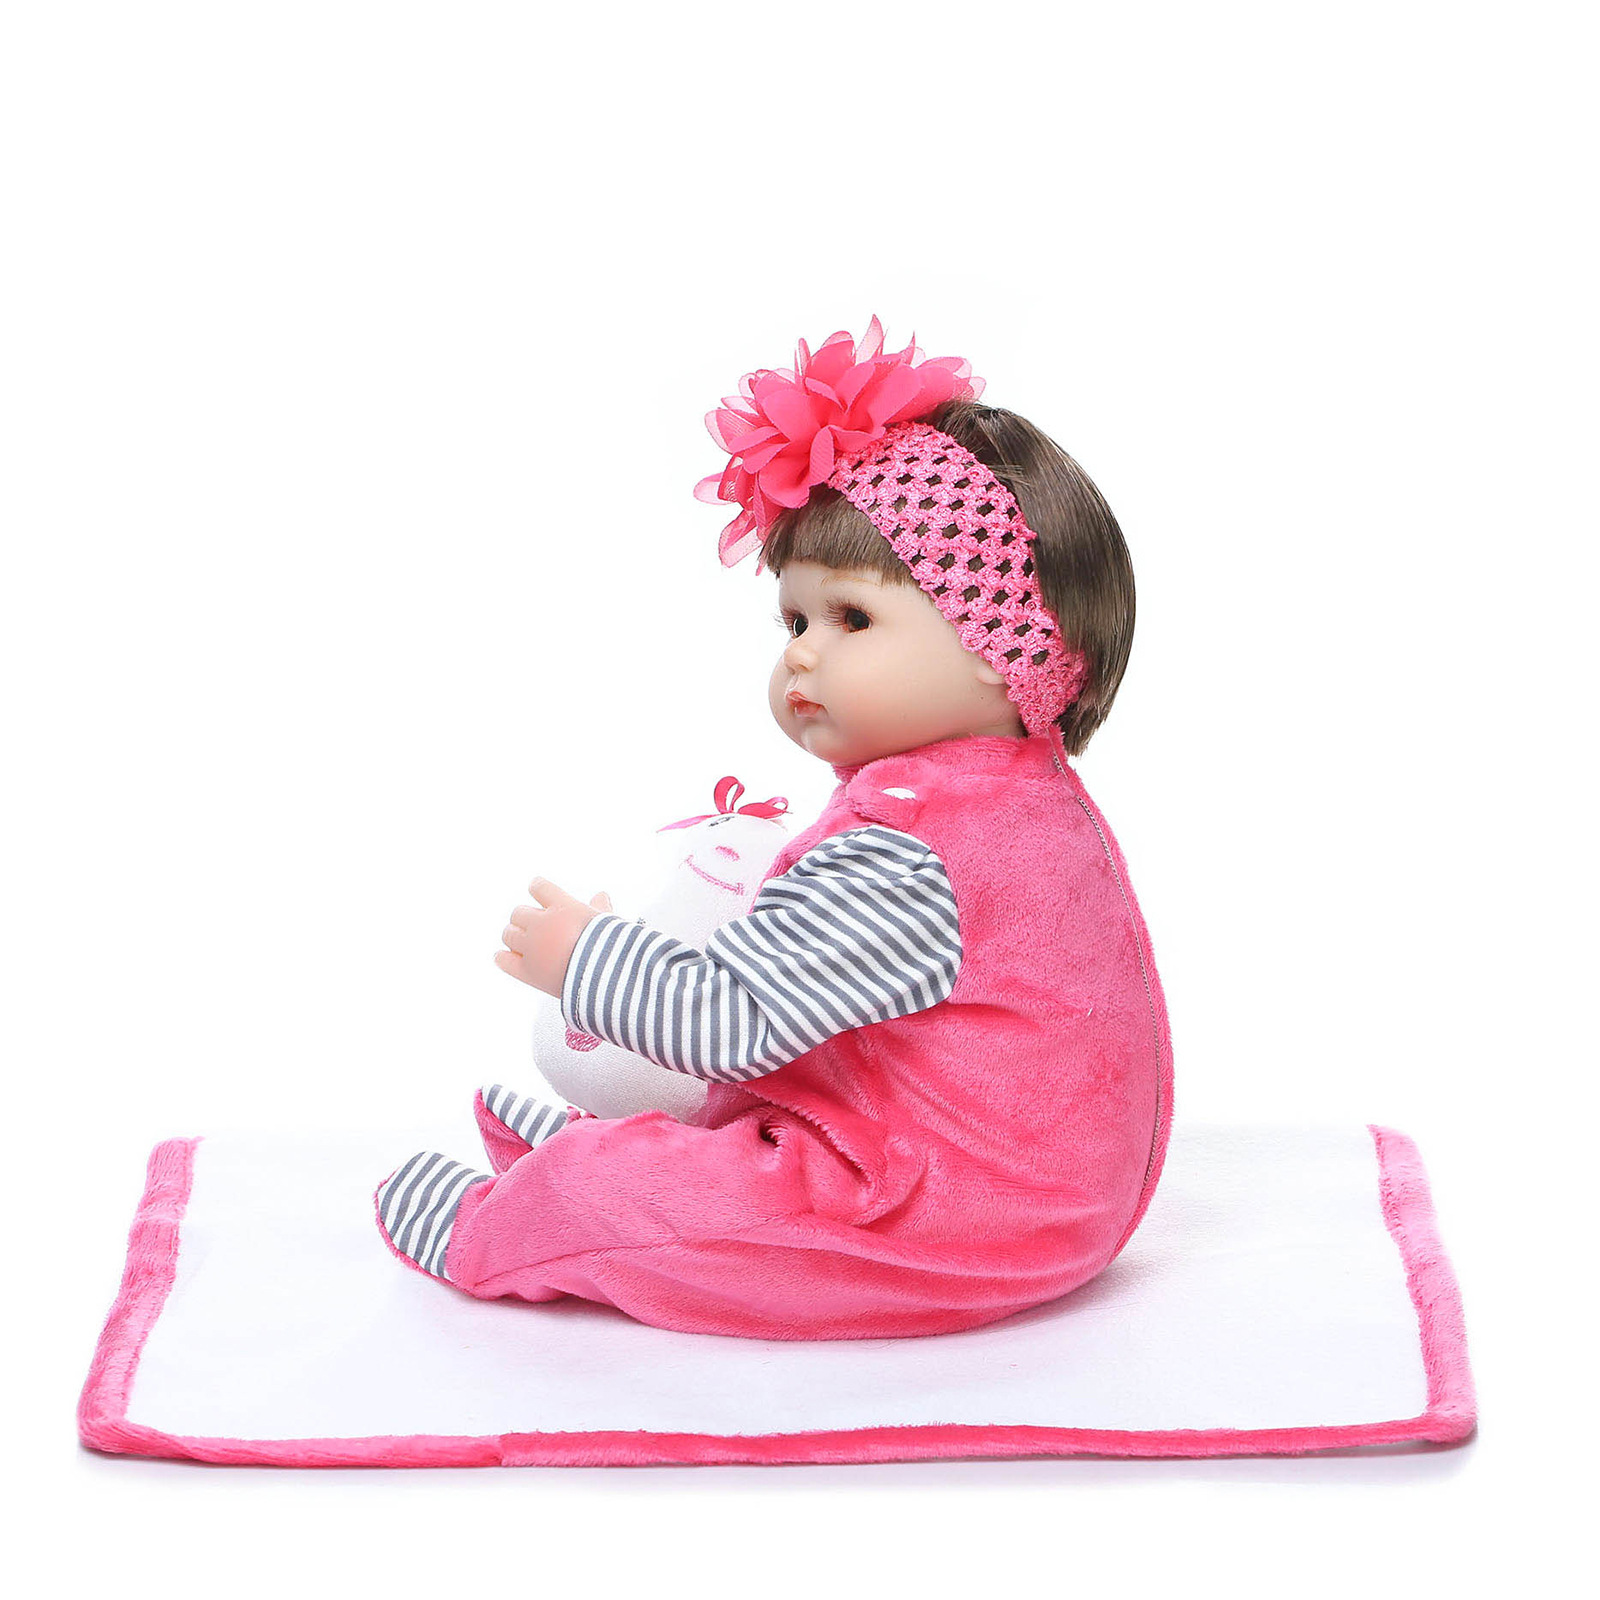 NPK AliExpress Hot Selling Model Infant Rebirth Soft Silcone Rag Baby Supply of Goods